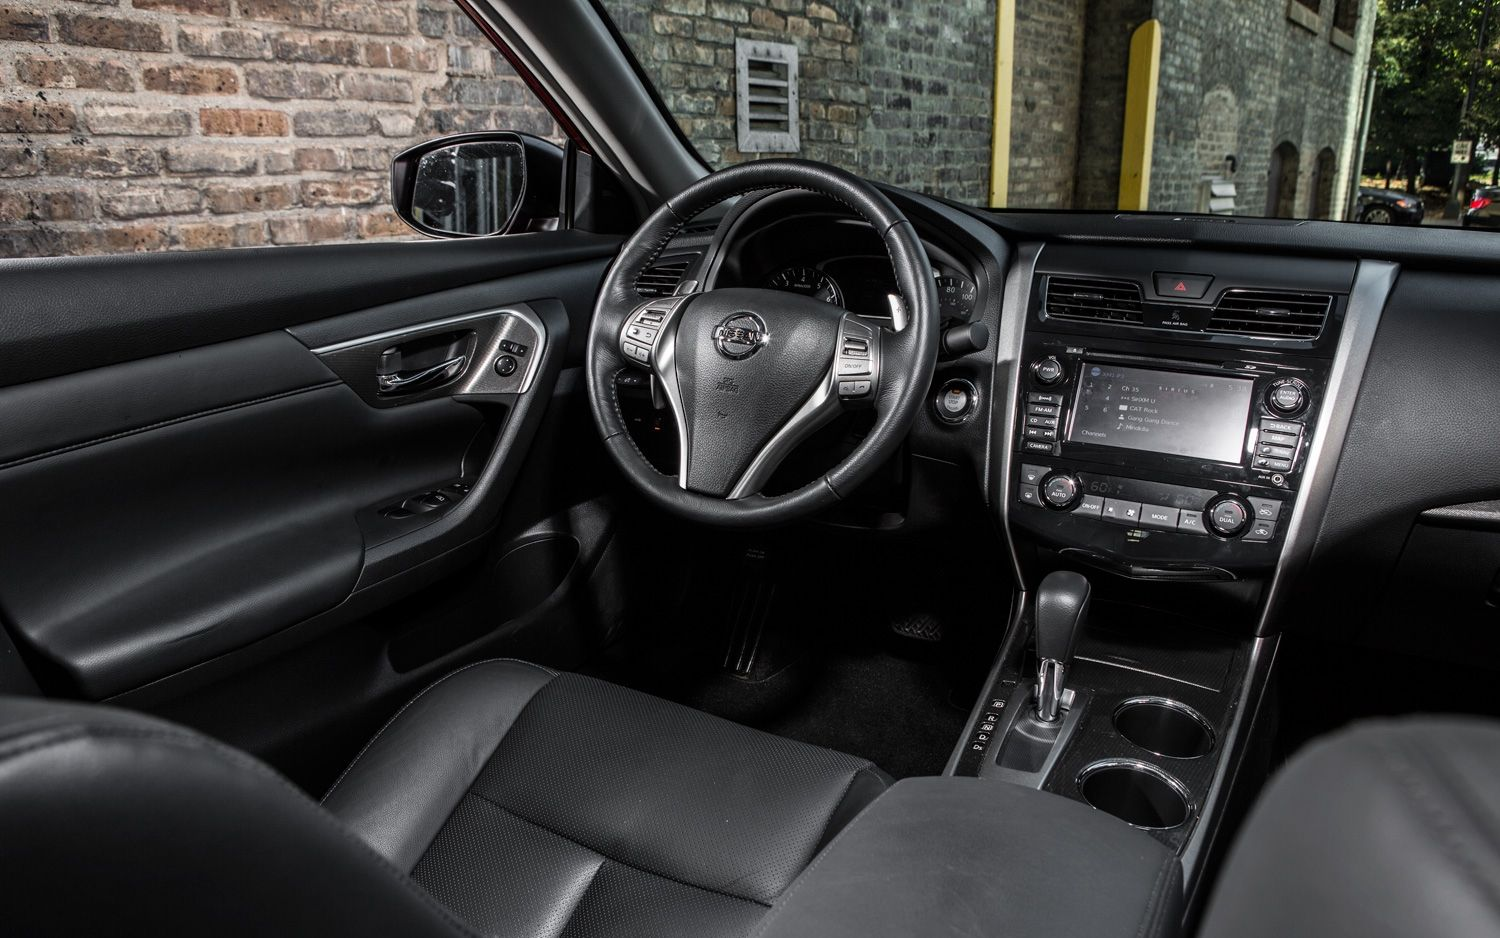 2015 nissan altima 35 sl shown in charcoal leather with optional 2015 nissan altima 35 sl shown in charcoal leather with optional equipment nissan altima pinterest nissan altima nissan and cars vanachro Gallery